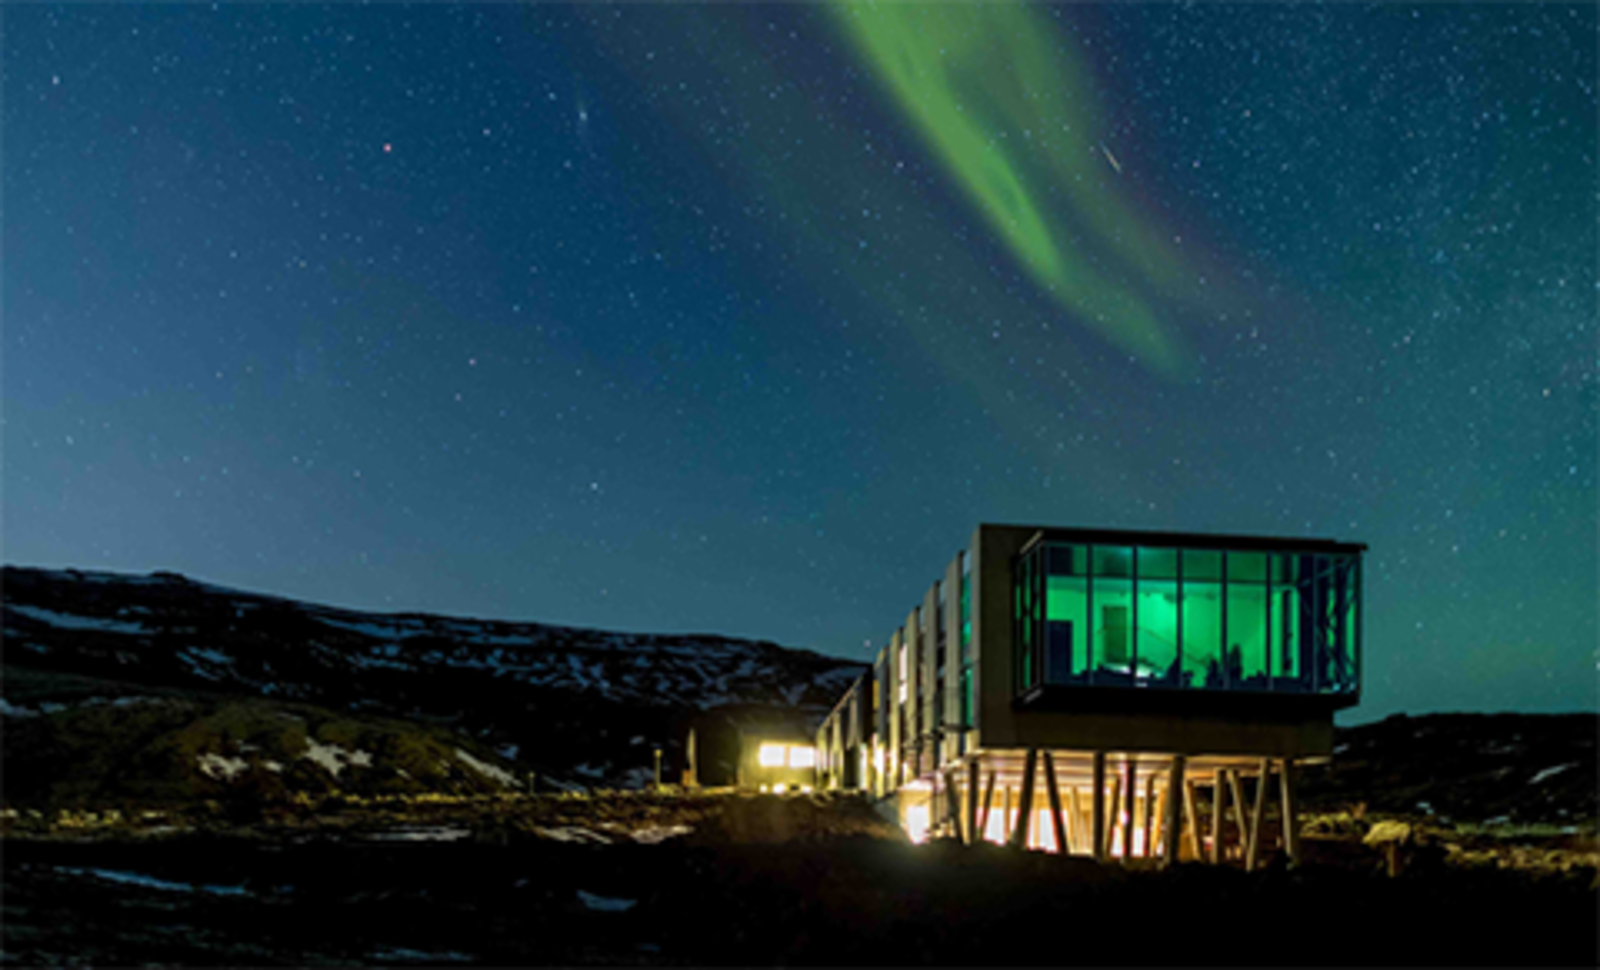 Northern Lights Bar (Iceland) designed by Minarc, nominated in Café/Bar category.  Integrating Nature from AIA|LA Announces Restaurant Design Awards Finalists